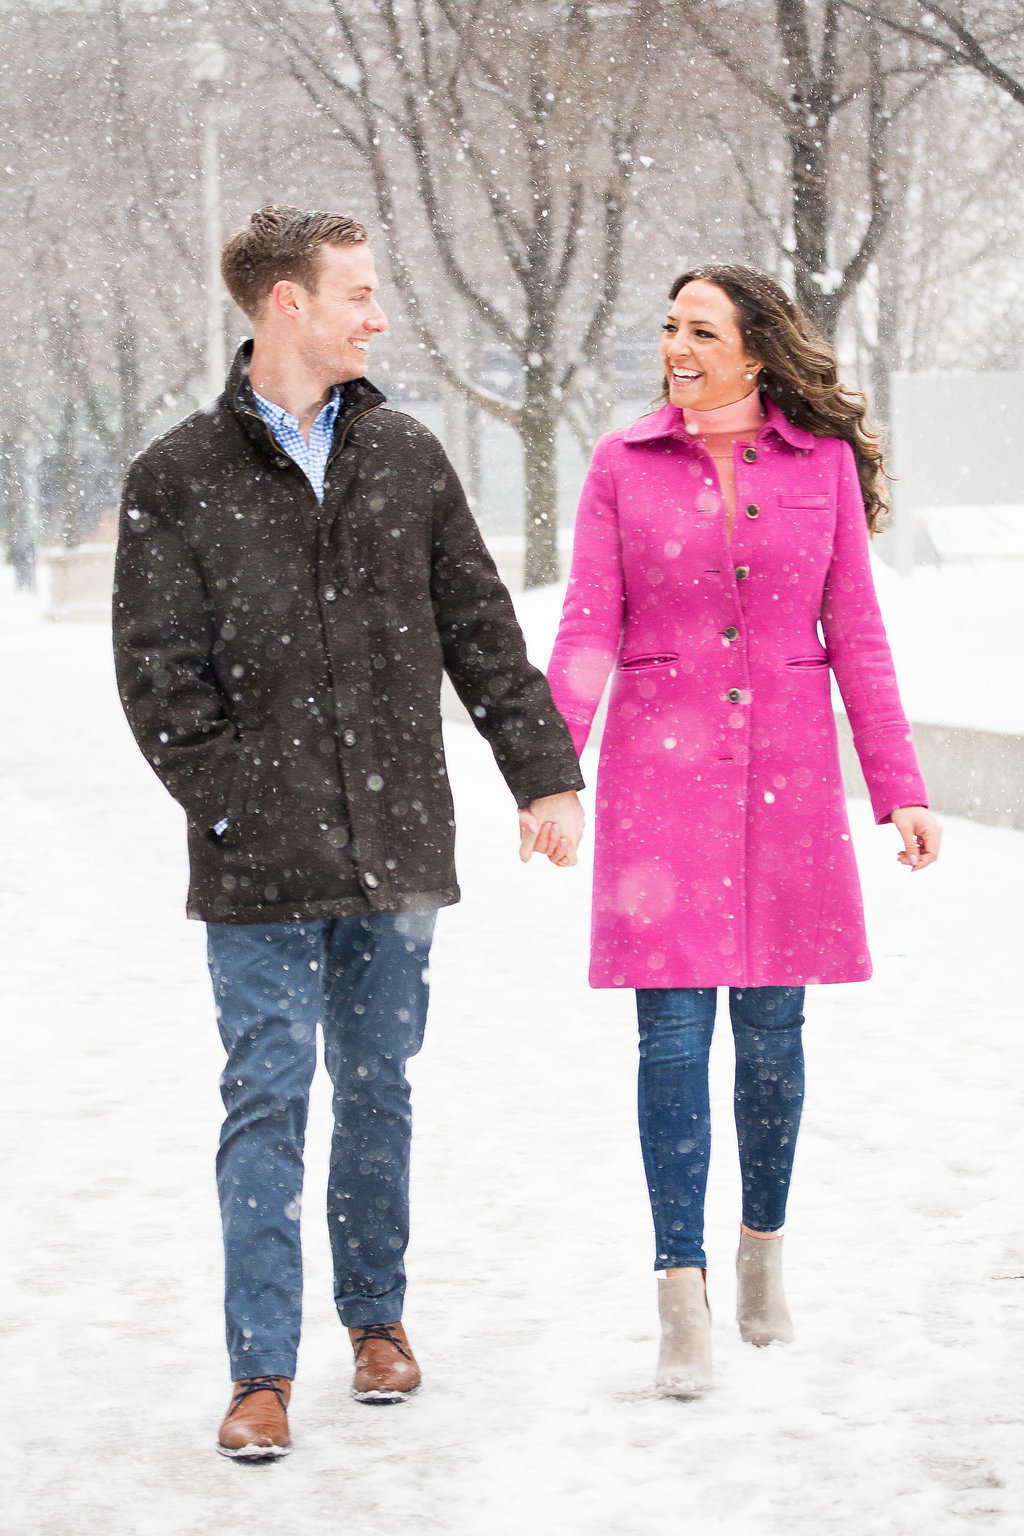 Millennium Park Chicago Illinois Winter Engagement Photographer Taylor Ingles 11